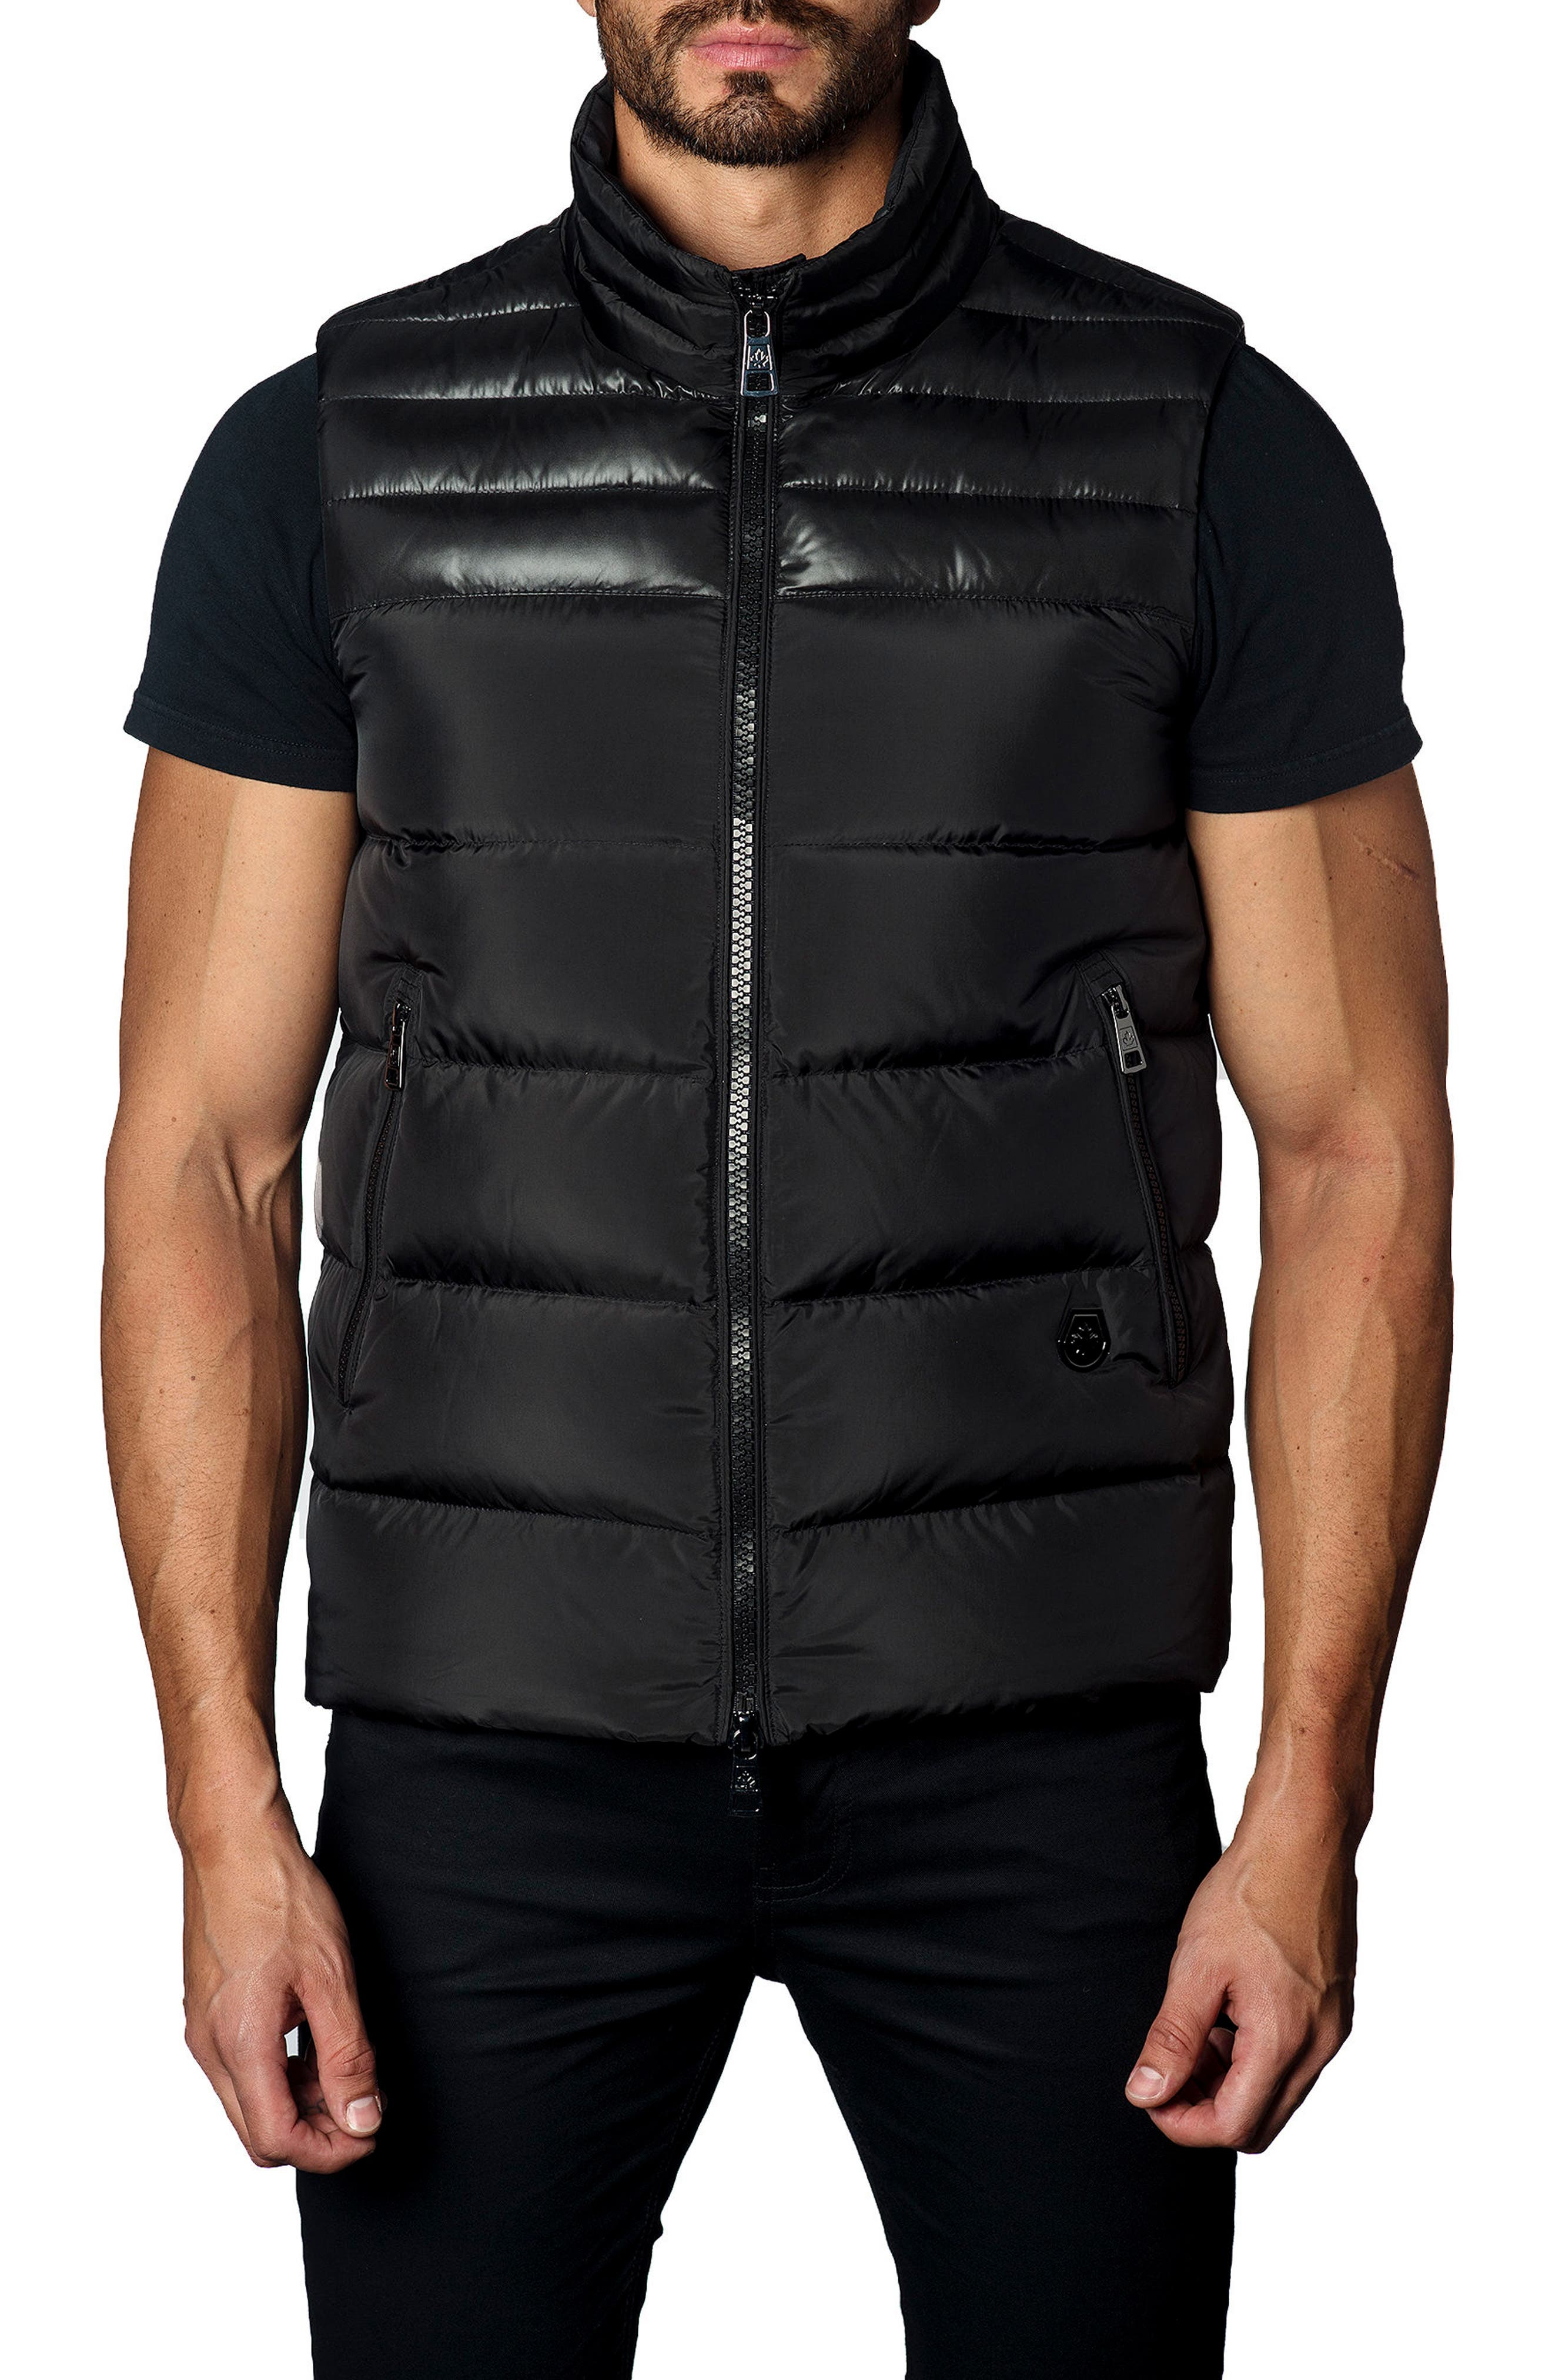 Jared Lang Down Puffer Jacket Discount Buy Cheap Official Cheap Sale Ebay Shop Your Own Kz8DBR8ZV